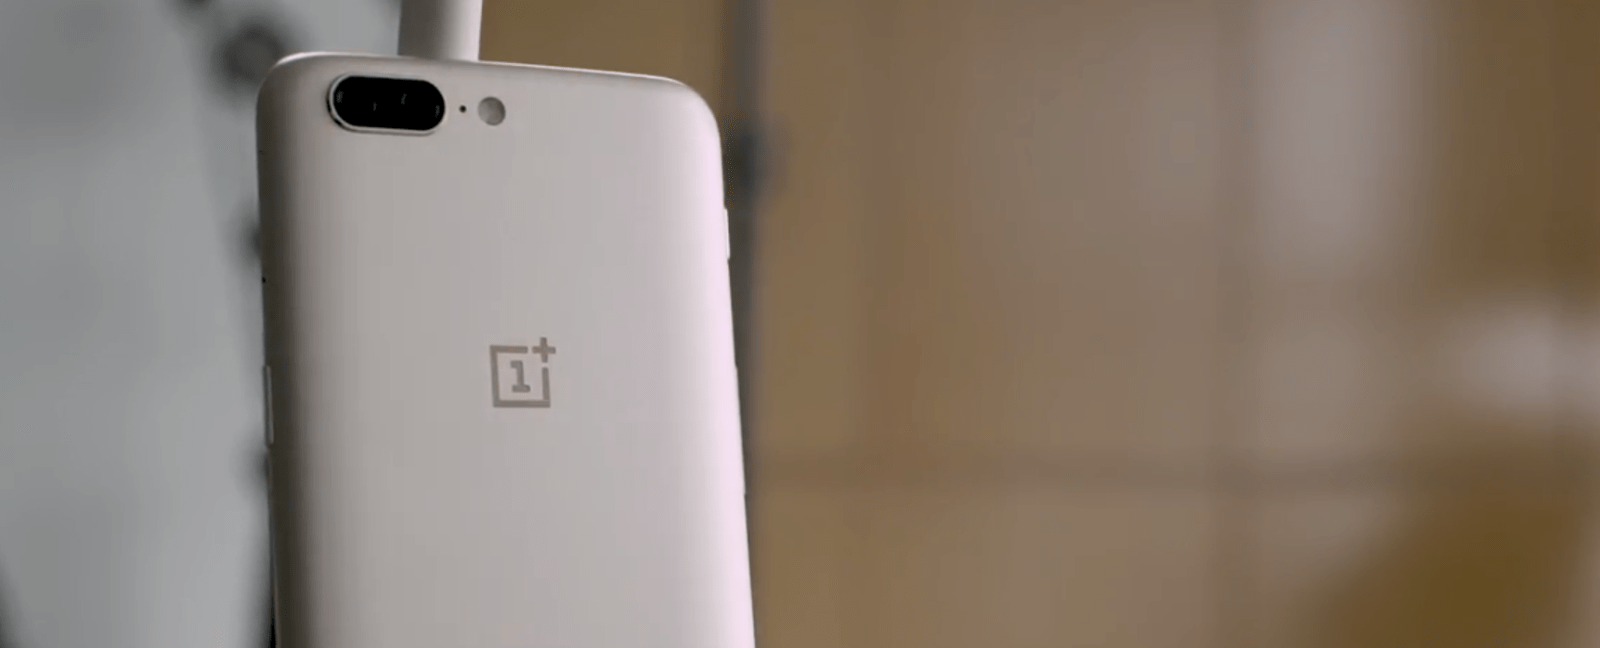 OxygenOS 4.5.5 update rolling out to OnePlus 5, third OTA since last week